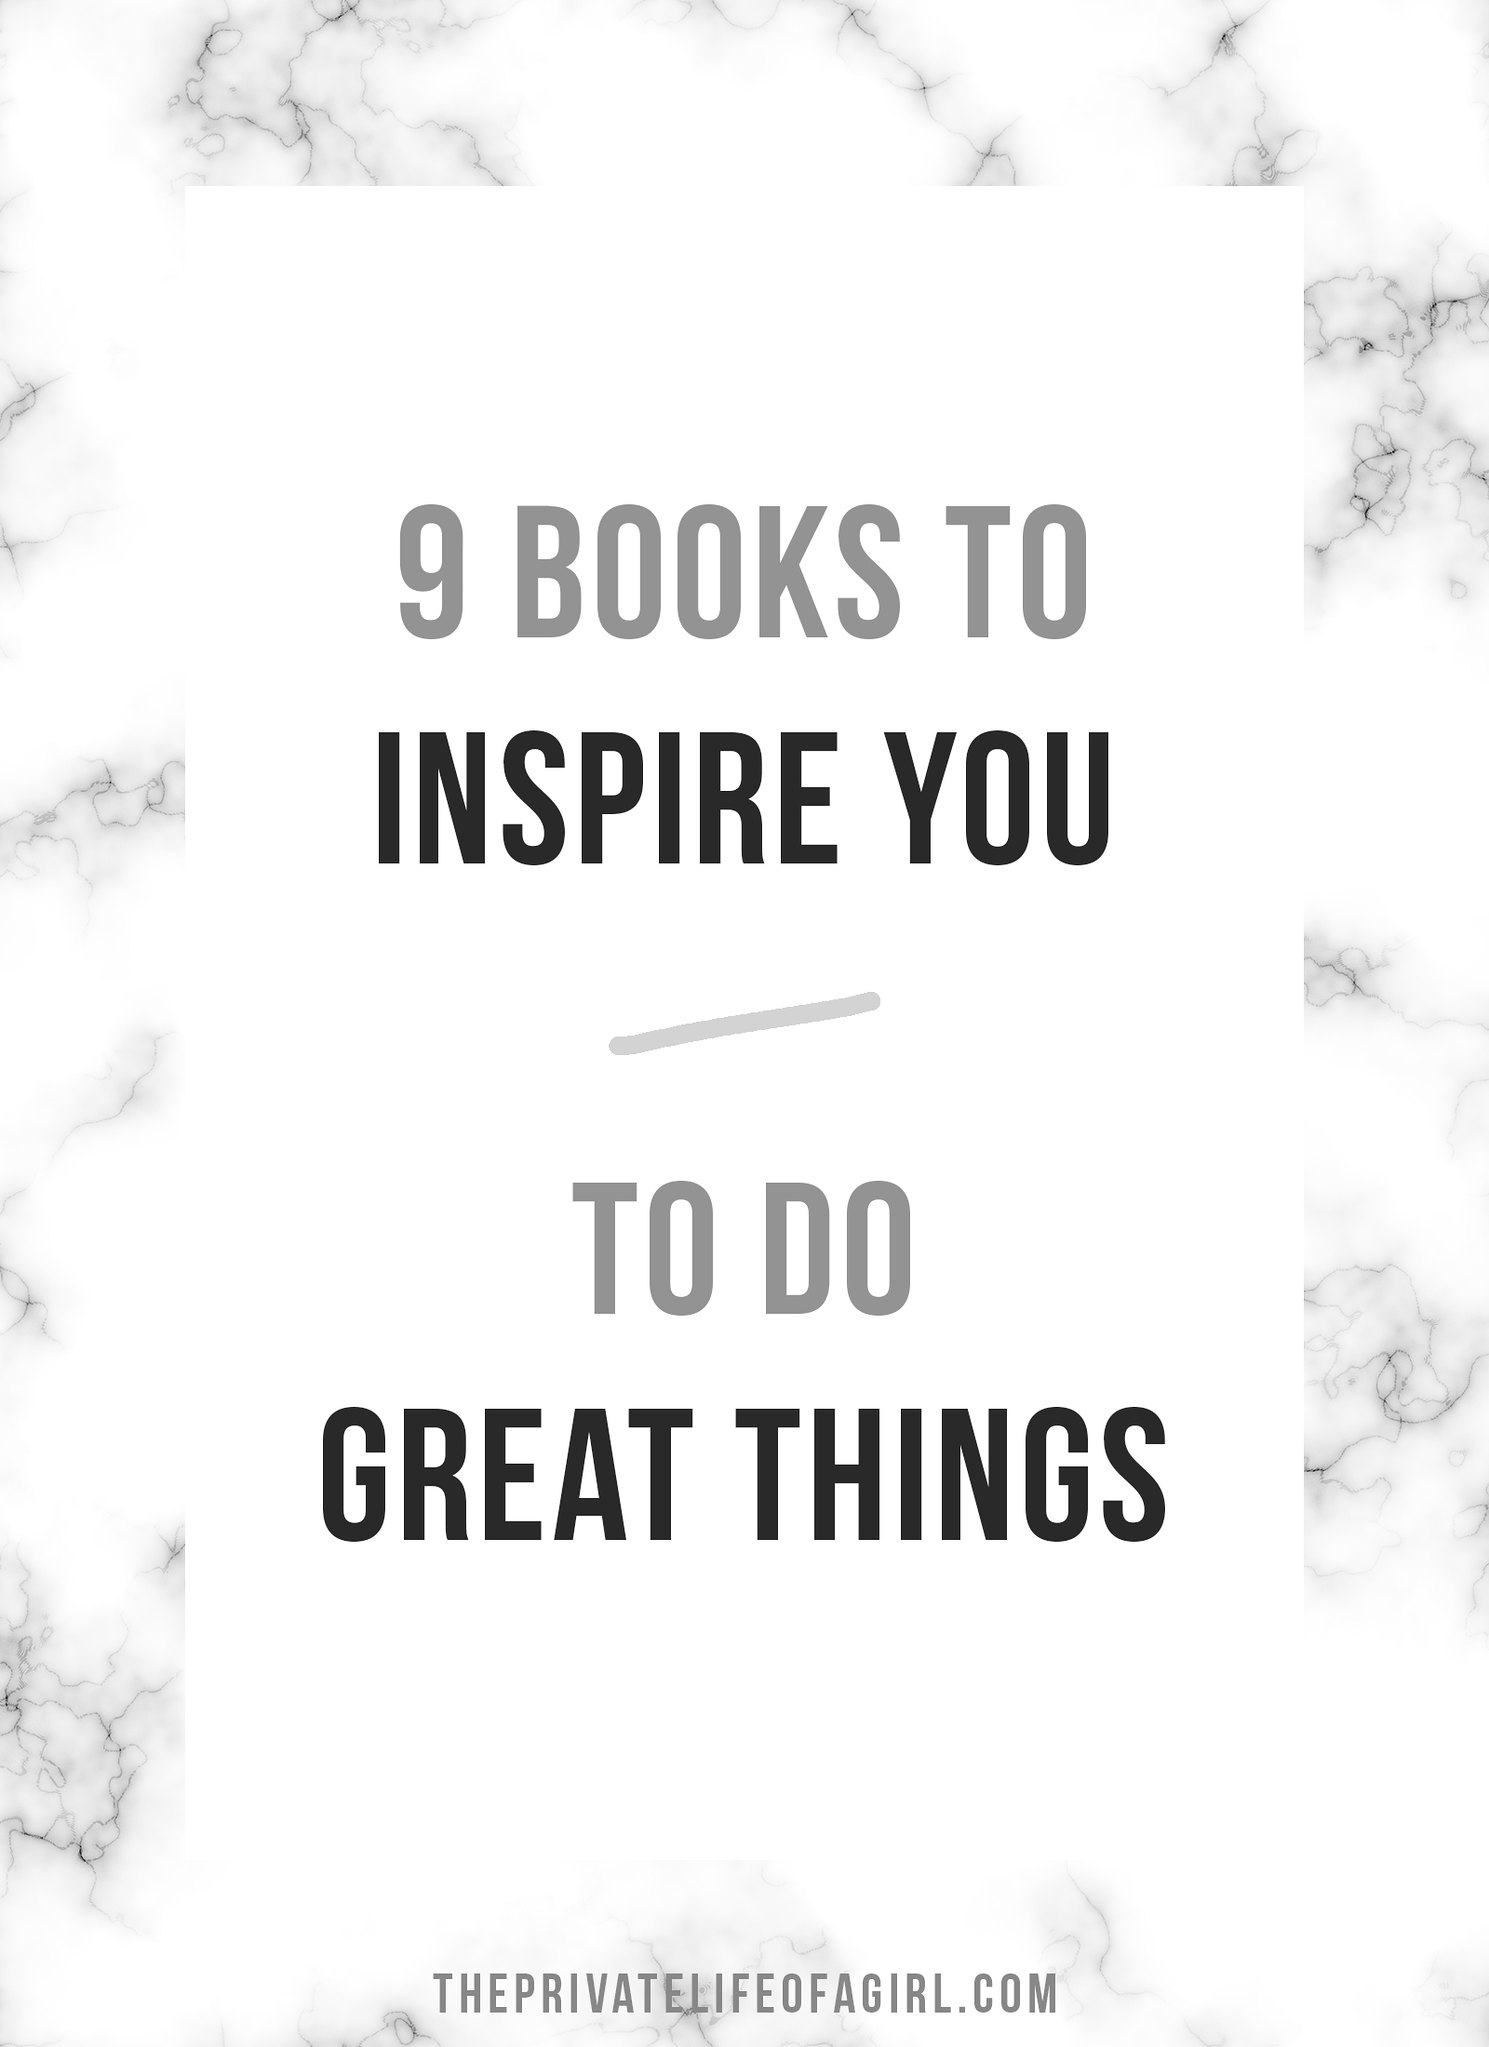 9 Books That Will Inspire You To Do Great Things